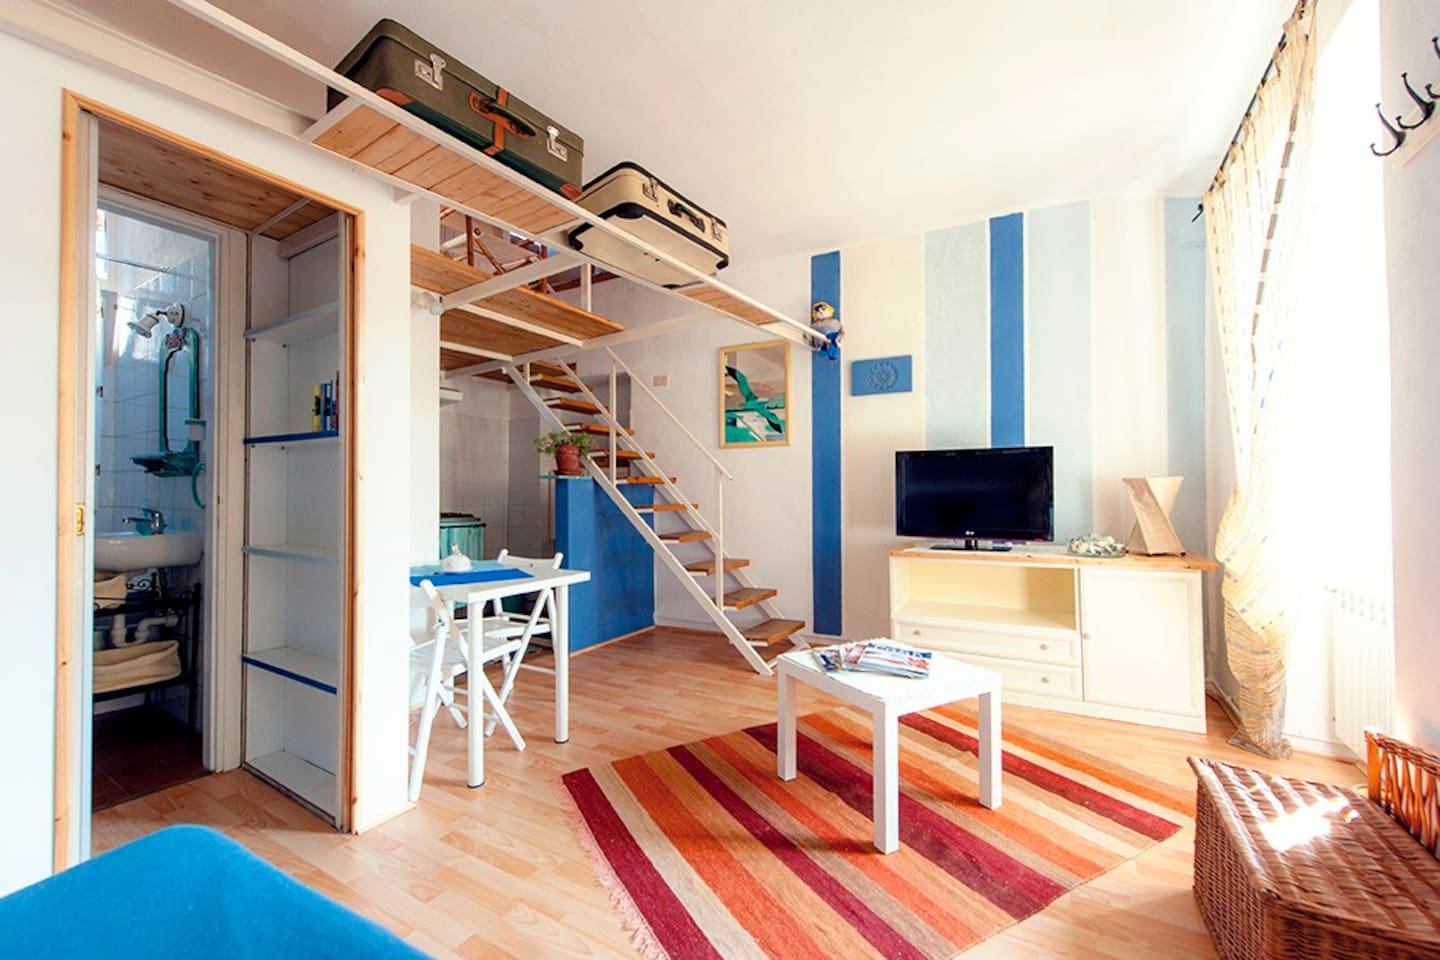 The Top 20 Lofts for Rent in Lugano - Airbnb, Ticino, Switzerland